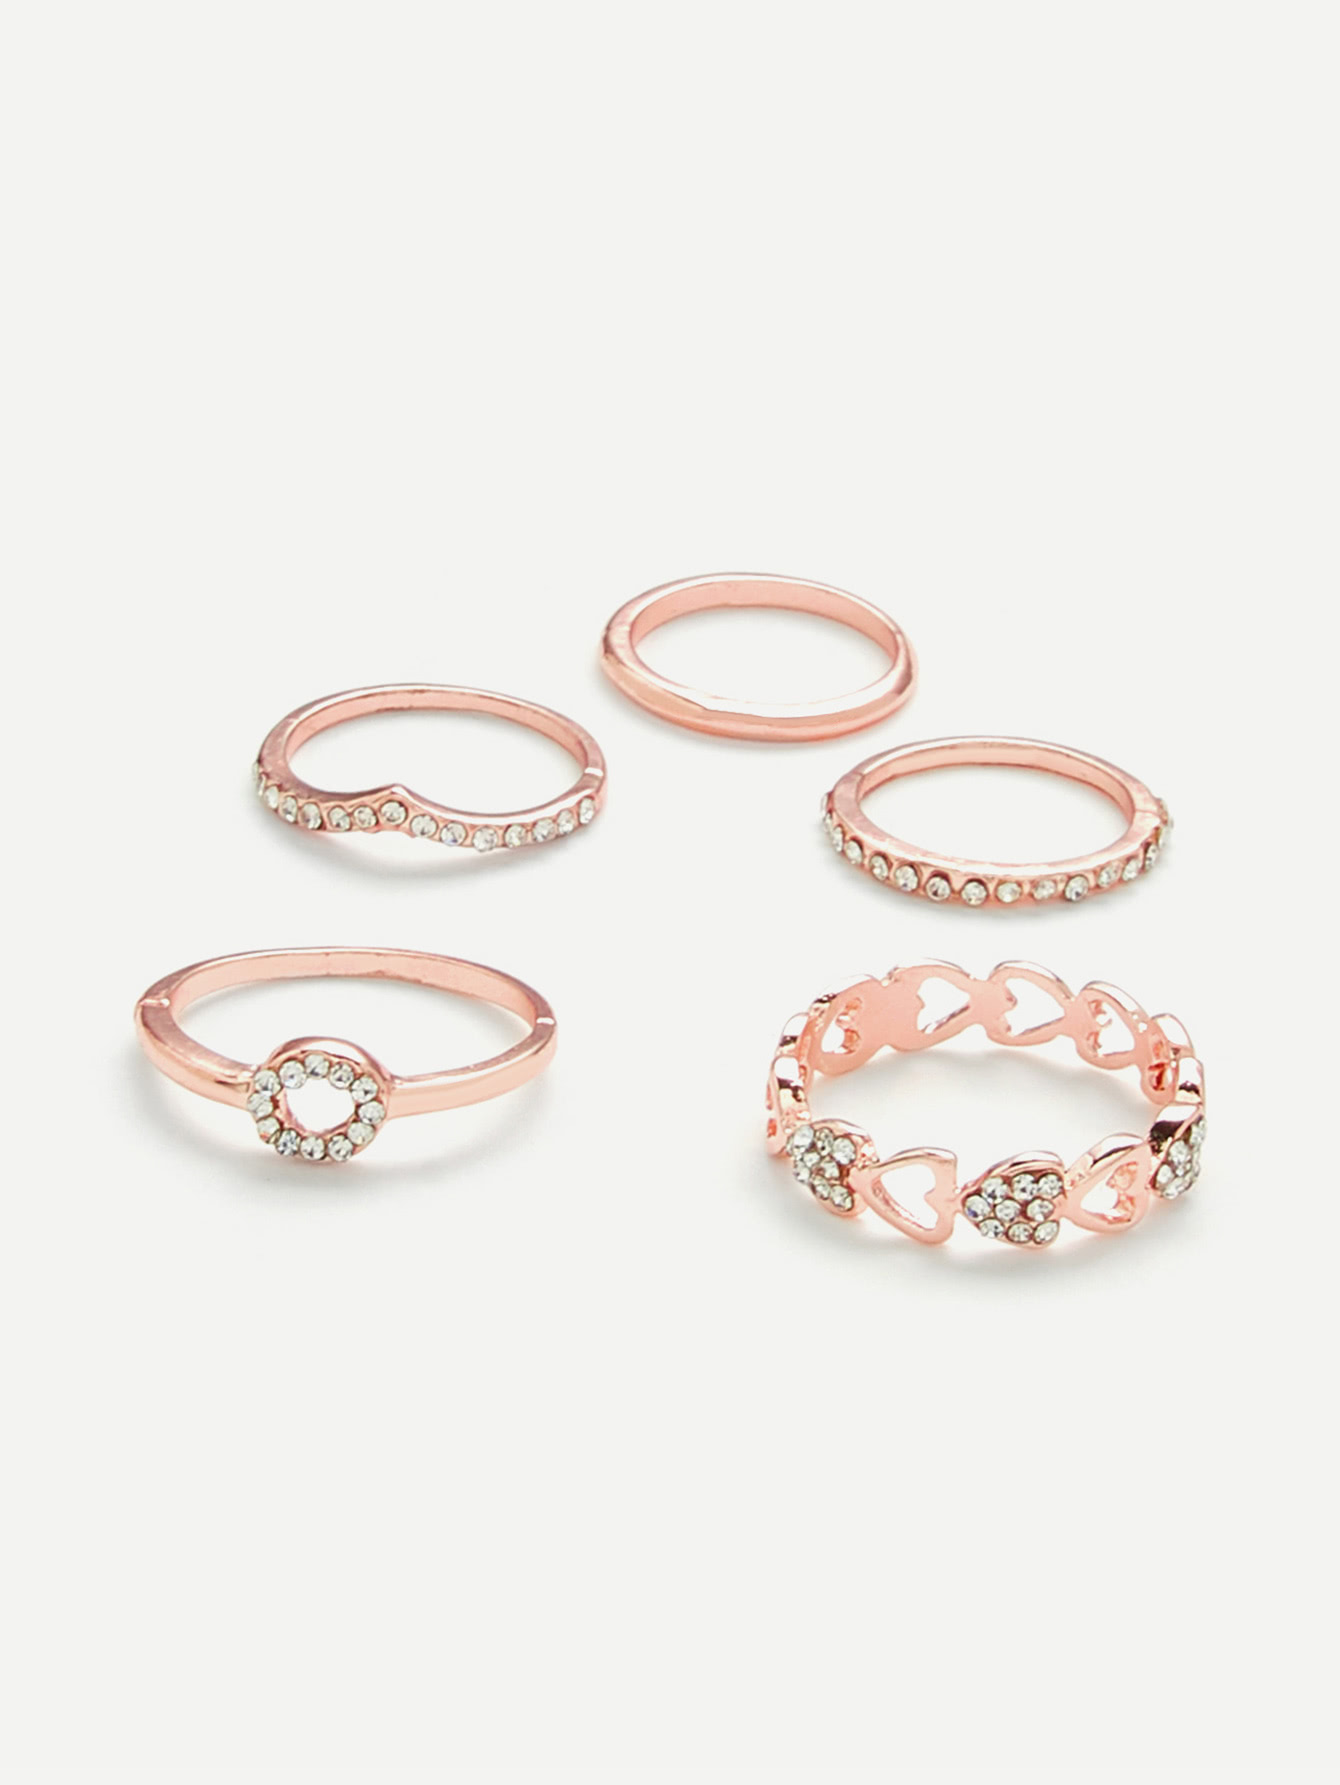 Heart Design Ring Set With Rhinestone open heart design ring